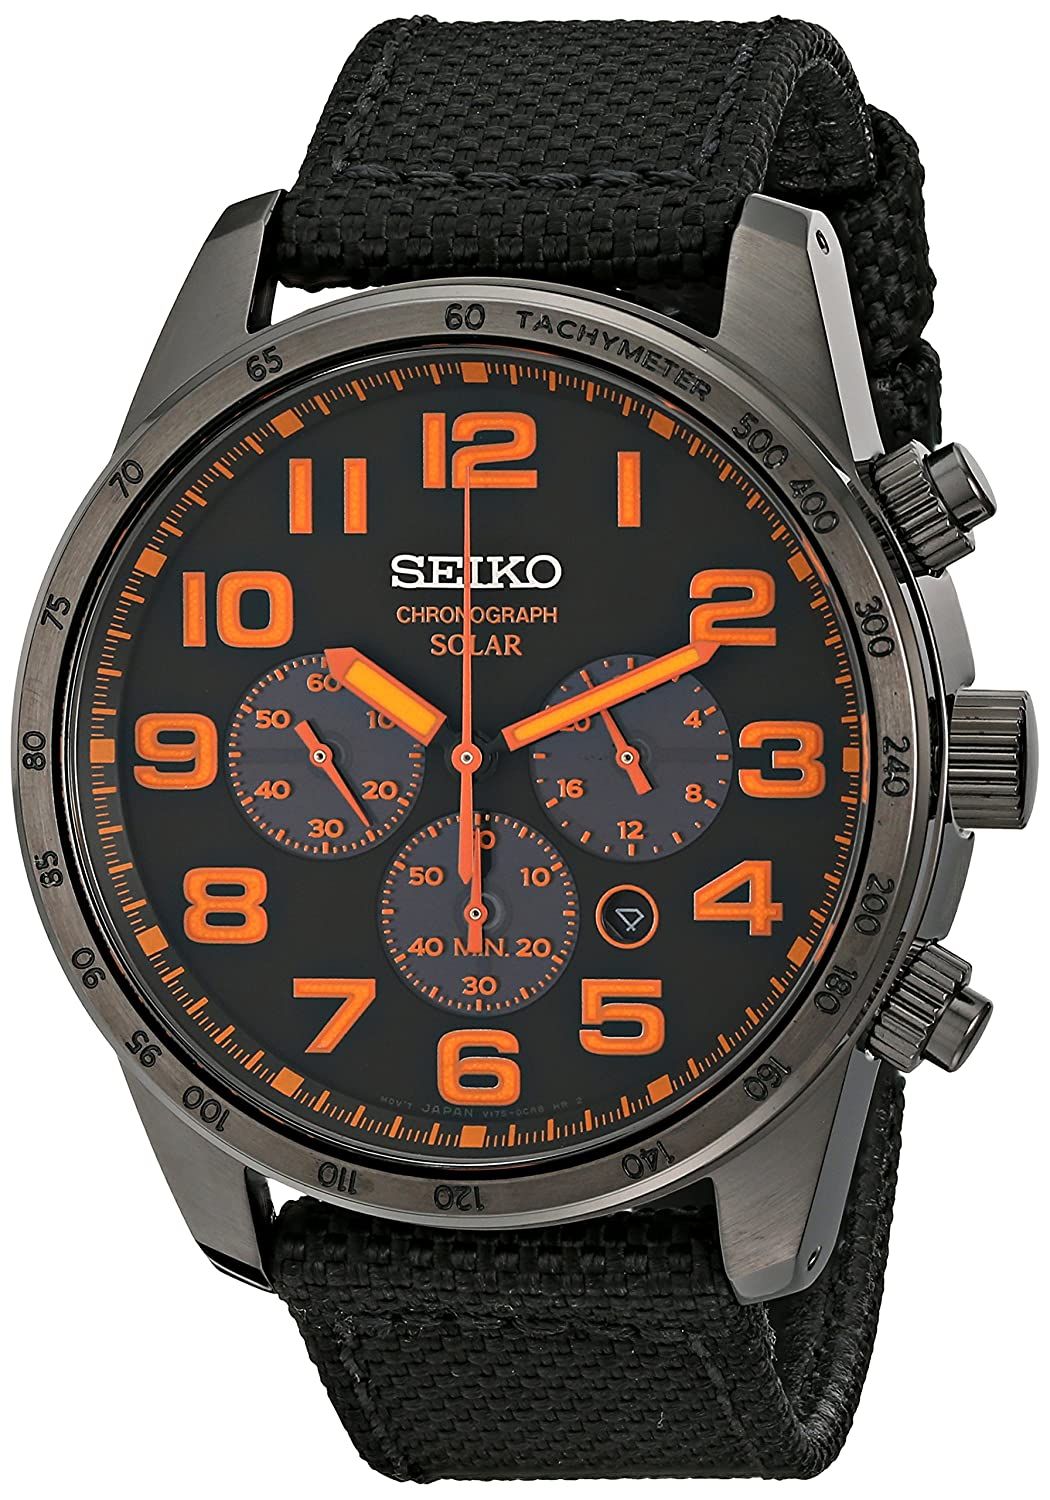 Seiko Men's Black Ion Finish Nylon Strap Solar Chronograph Watch